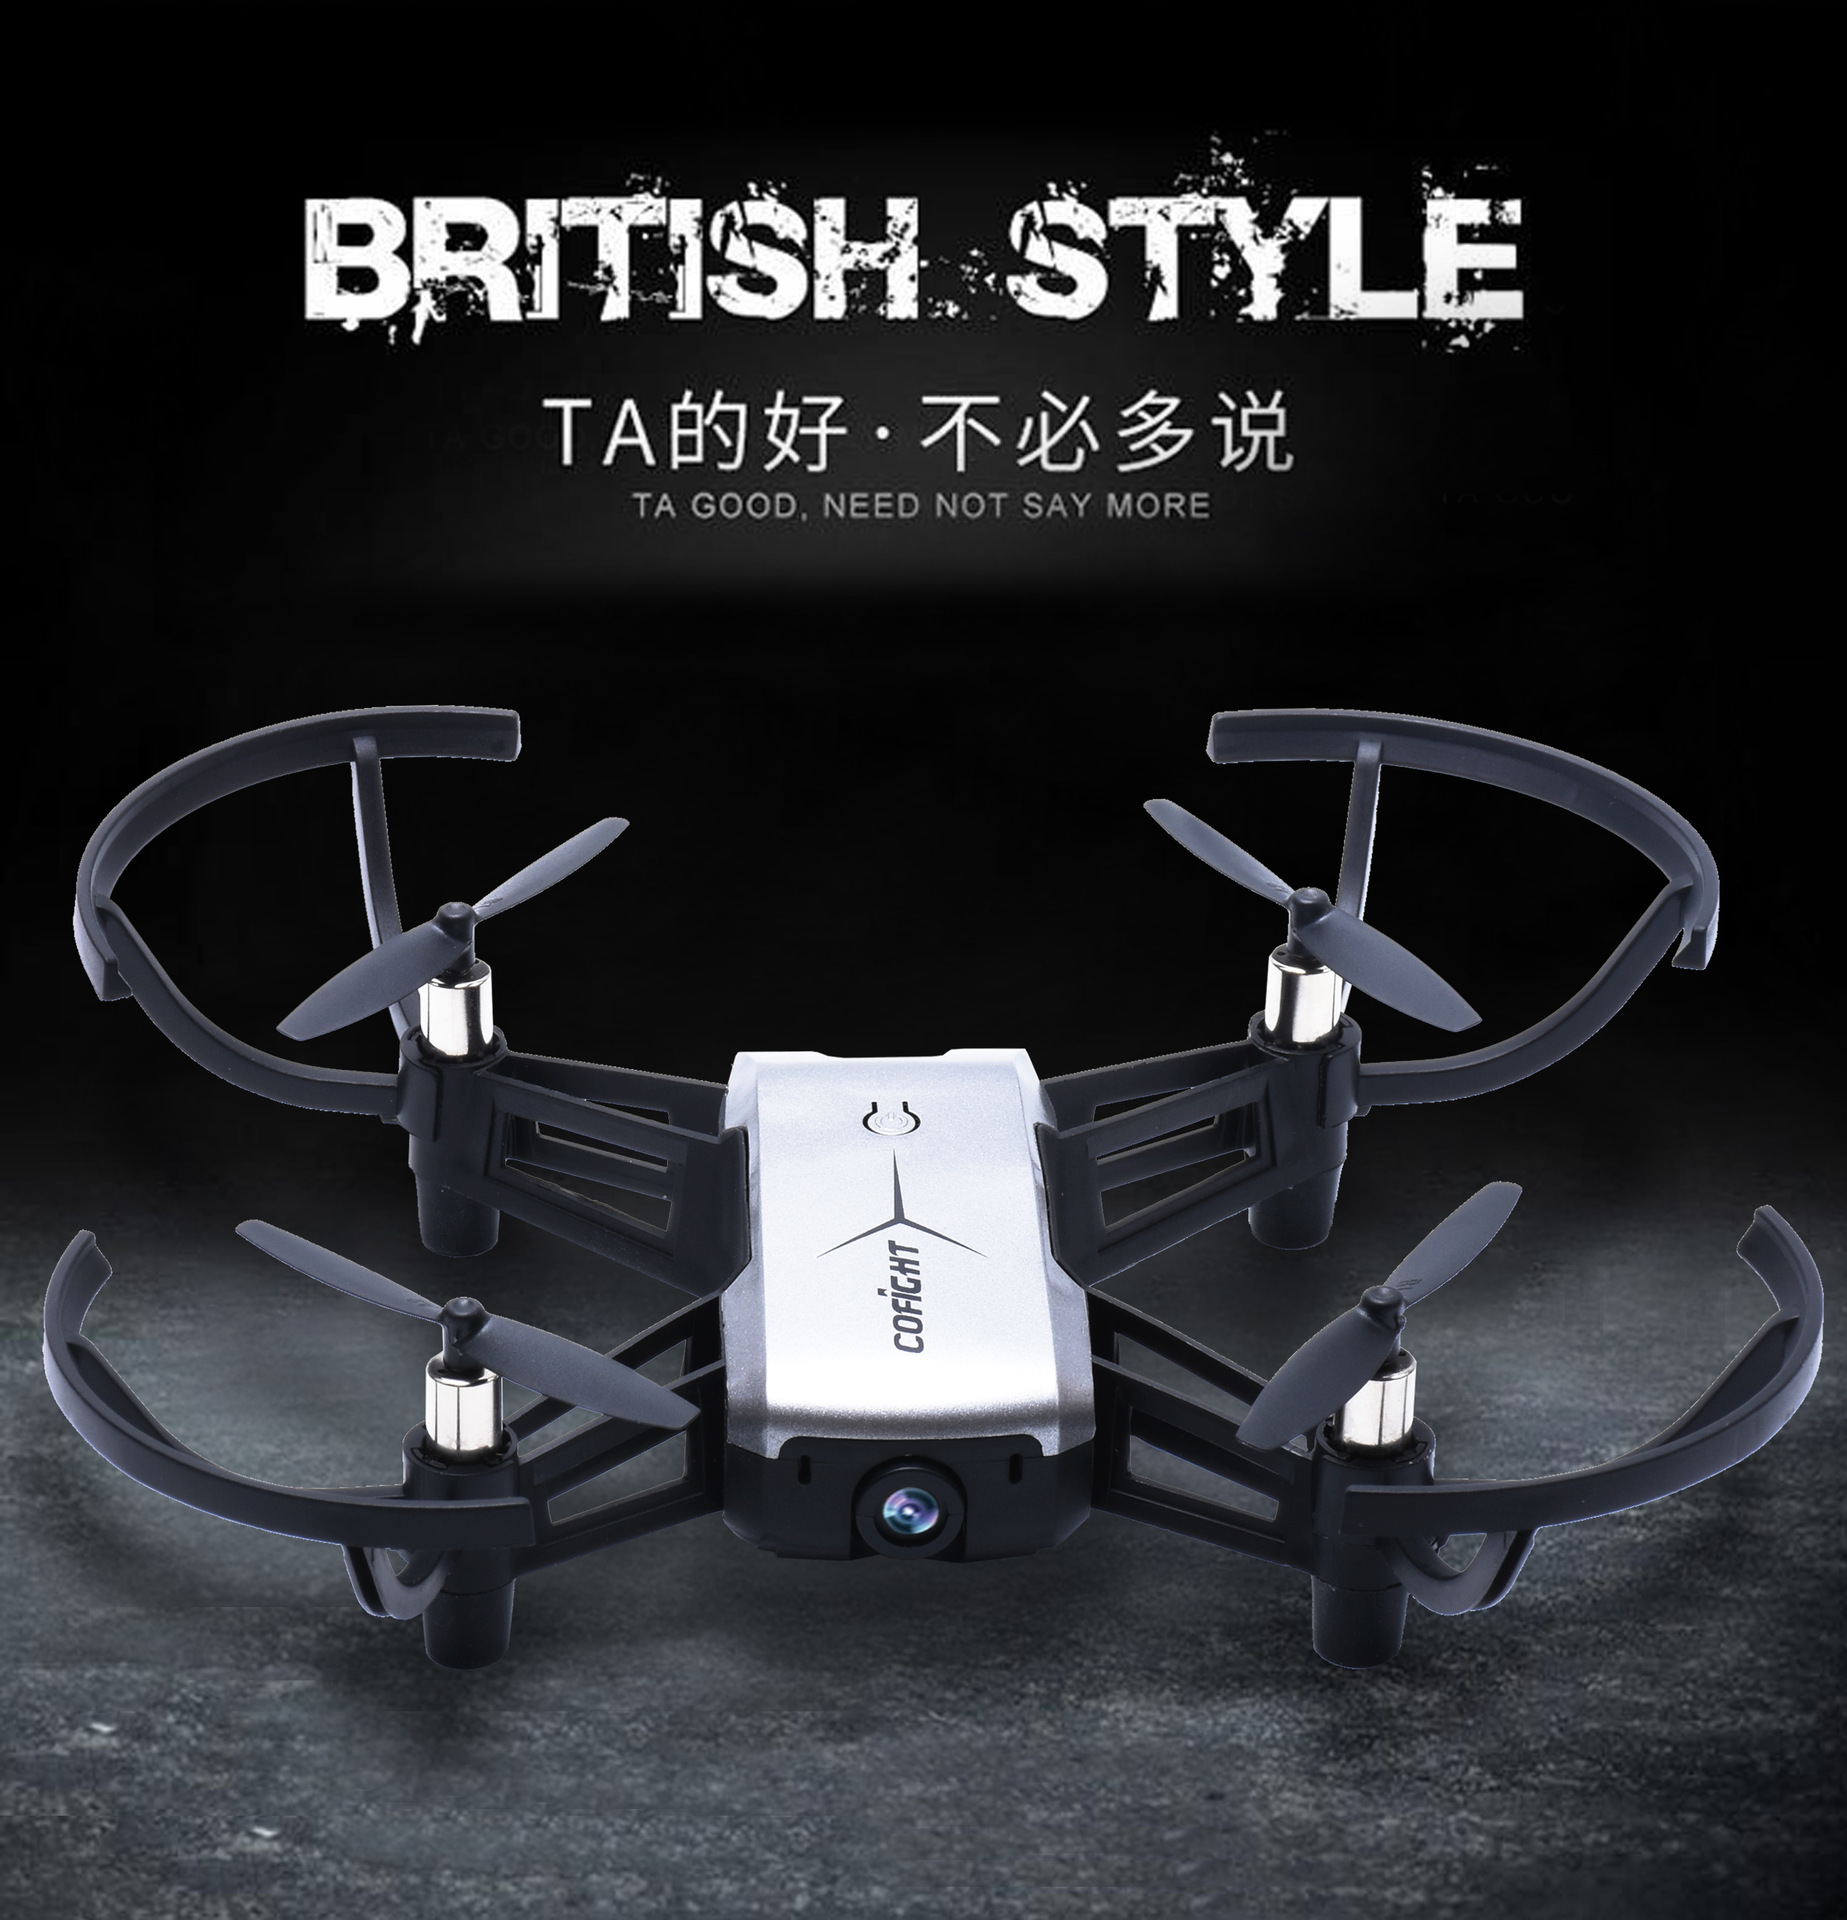 1802 Set High Aerial Photography Remote-control Four-axis Aircraft 720P Wide-angle WiFi Camera Unmanned Aerial Vehicle DJI Tello